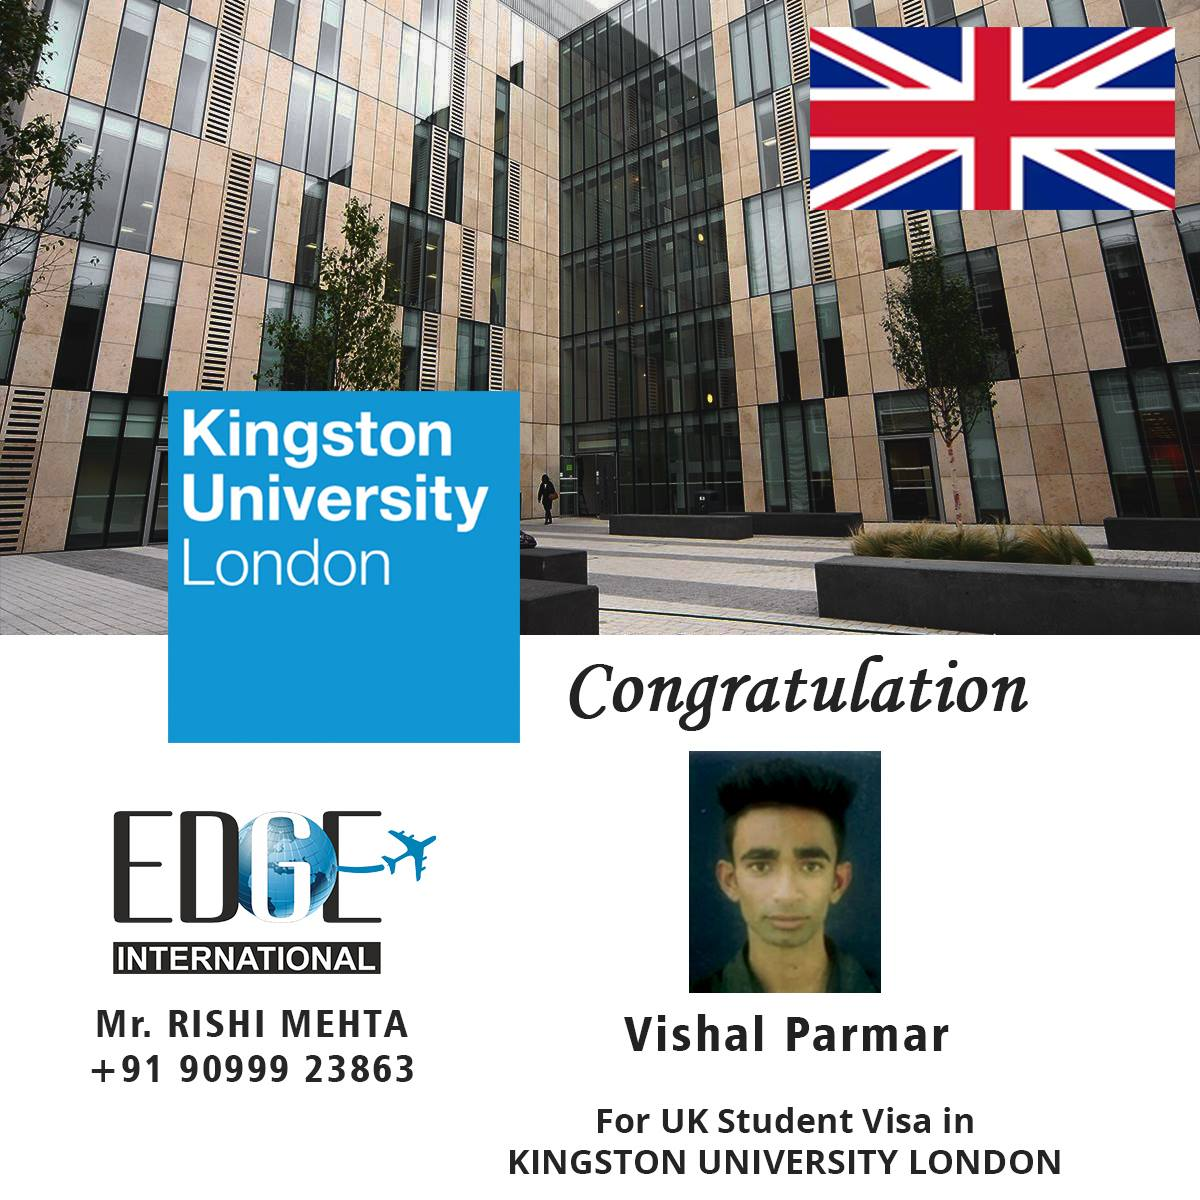 Congratulation to our student Vishal Parmar on getting his